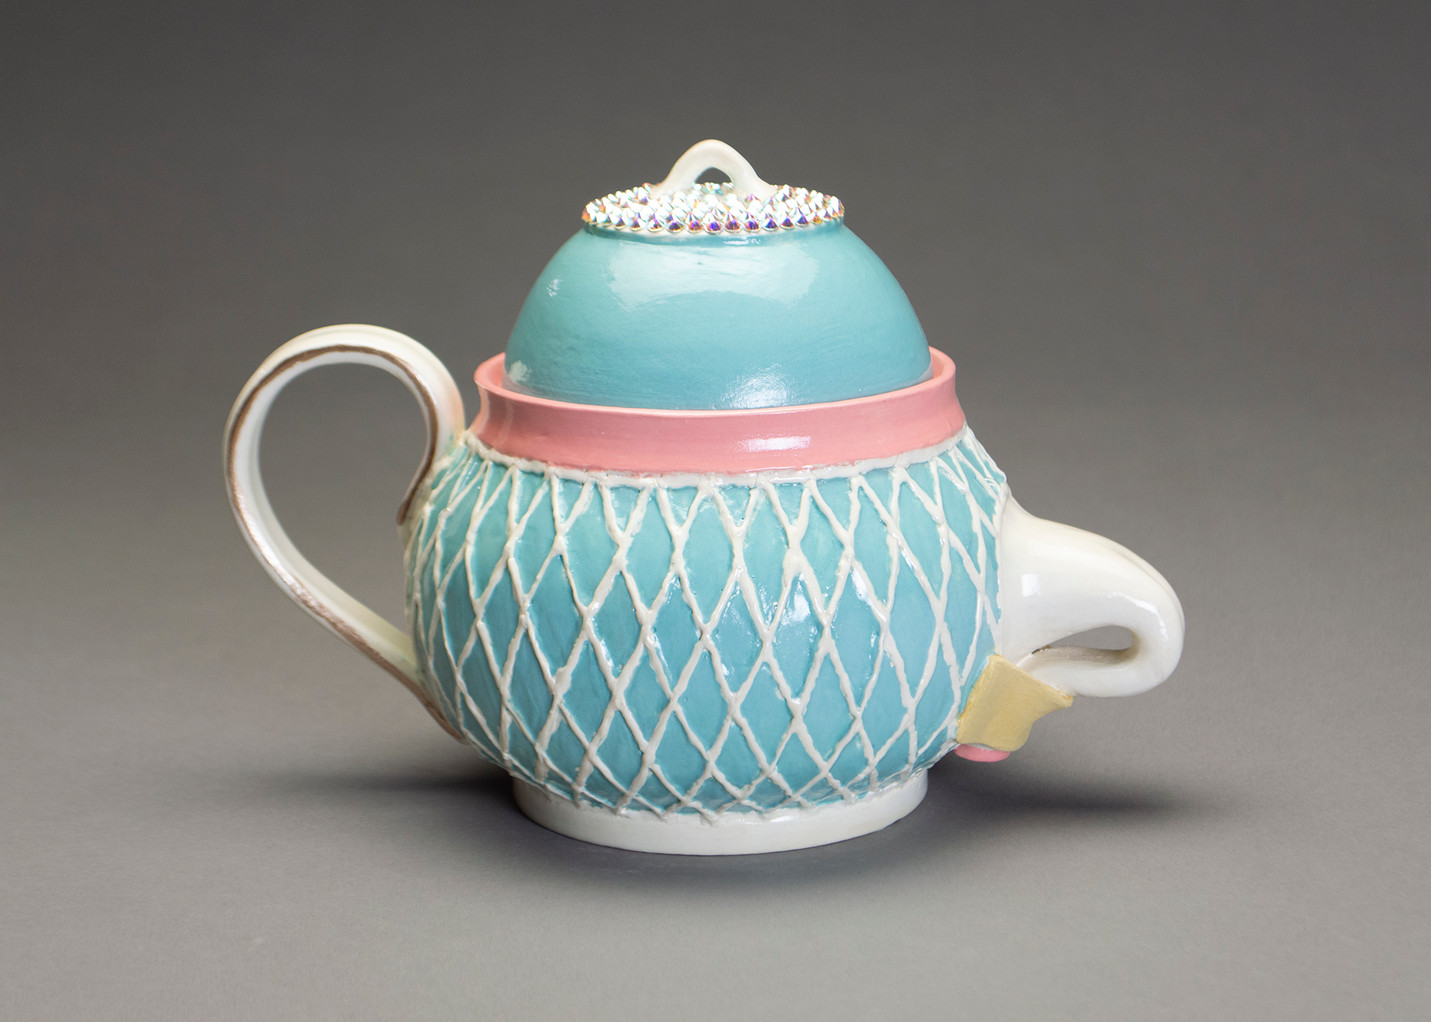 Tucked Teapot: Blue